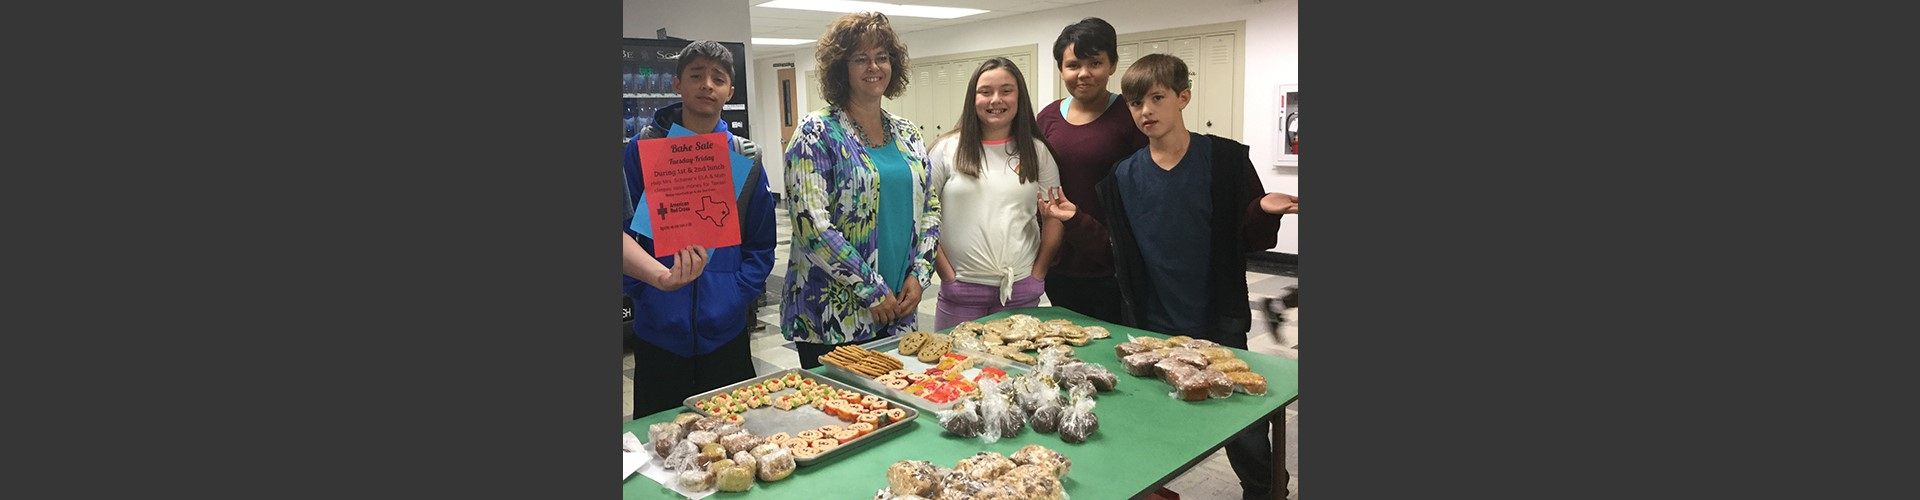 Students and teacher posing with bake sale items for fundraiser.